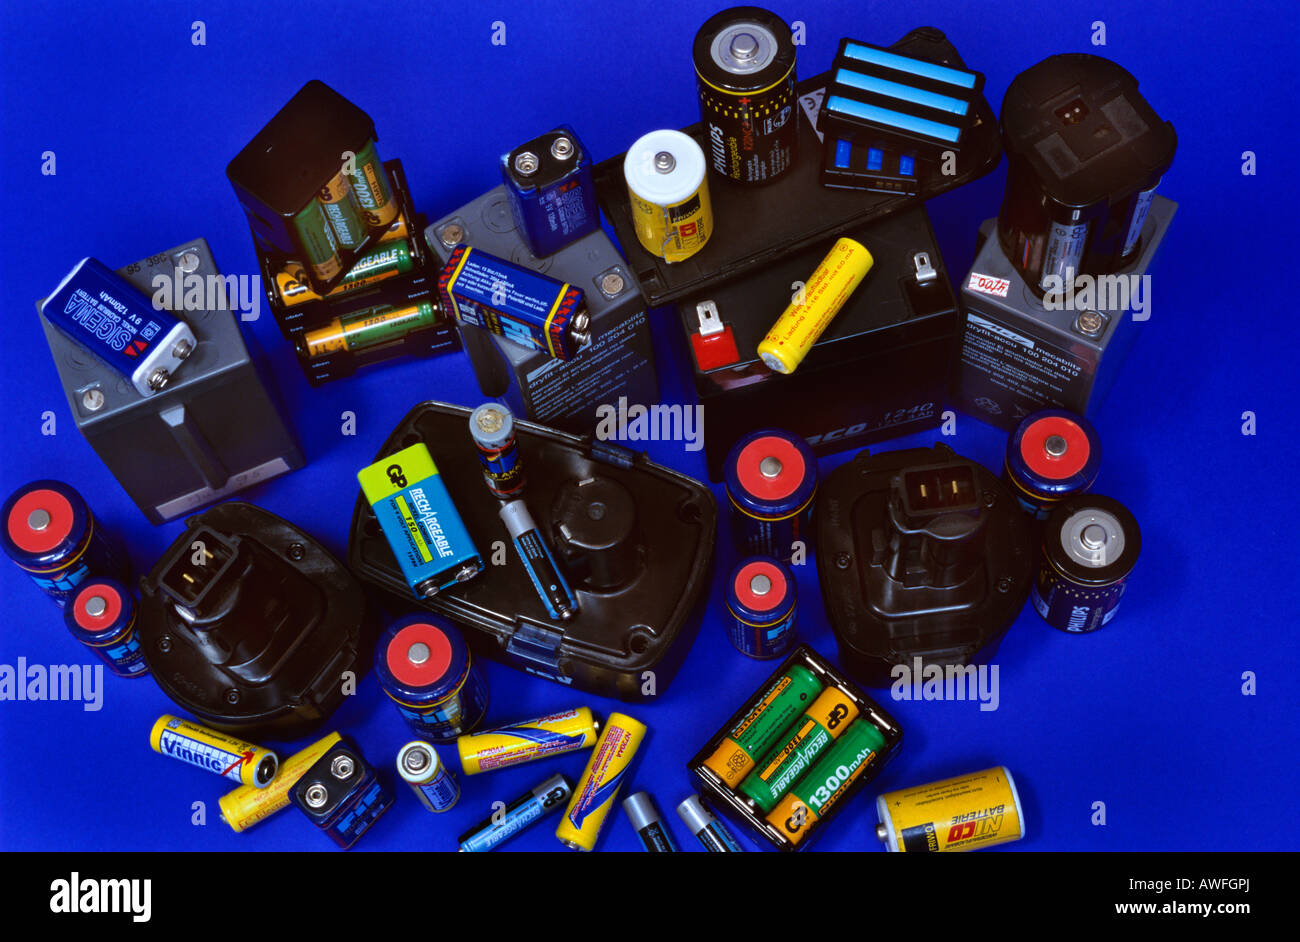 Old rechargeable batteries against a blue backdrop - Stock Image